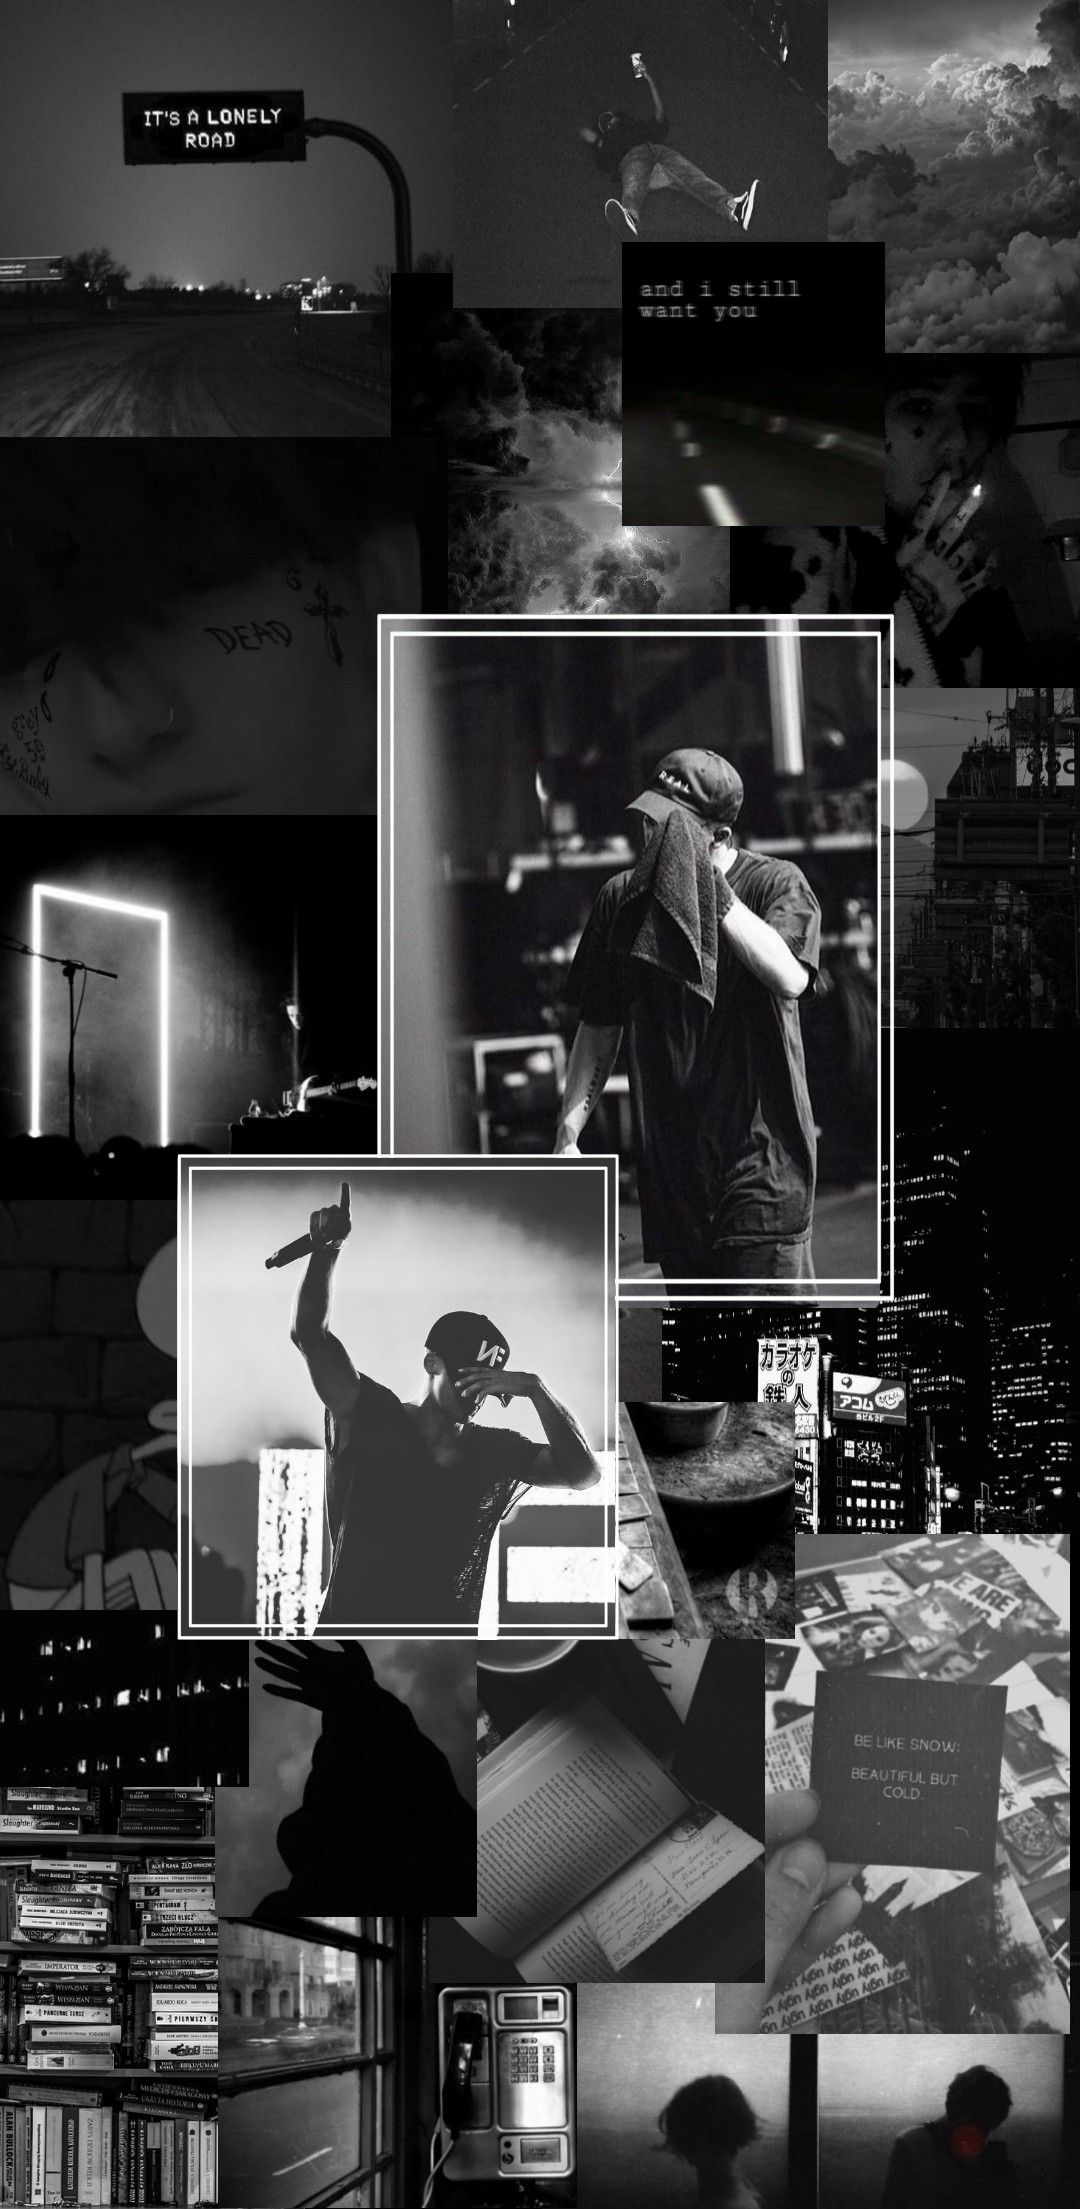 Nf Real Music Aesthetic Wallpaper Black And White Music Wallpaper Black Aesthetic Wallpaper Dark Background Wallpaper